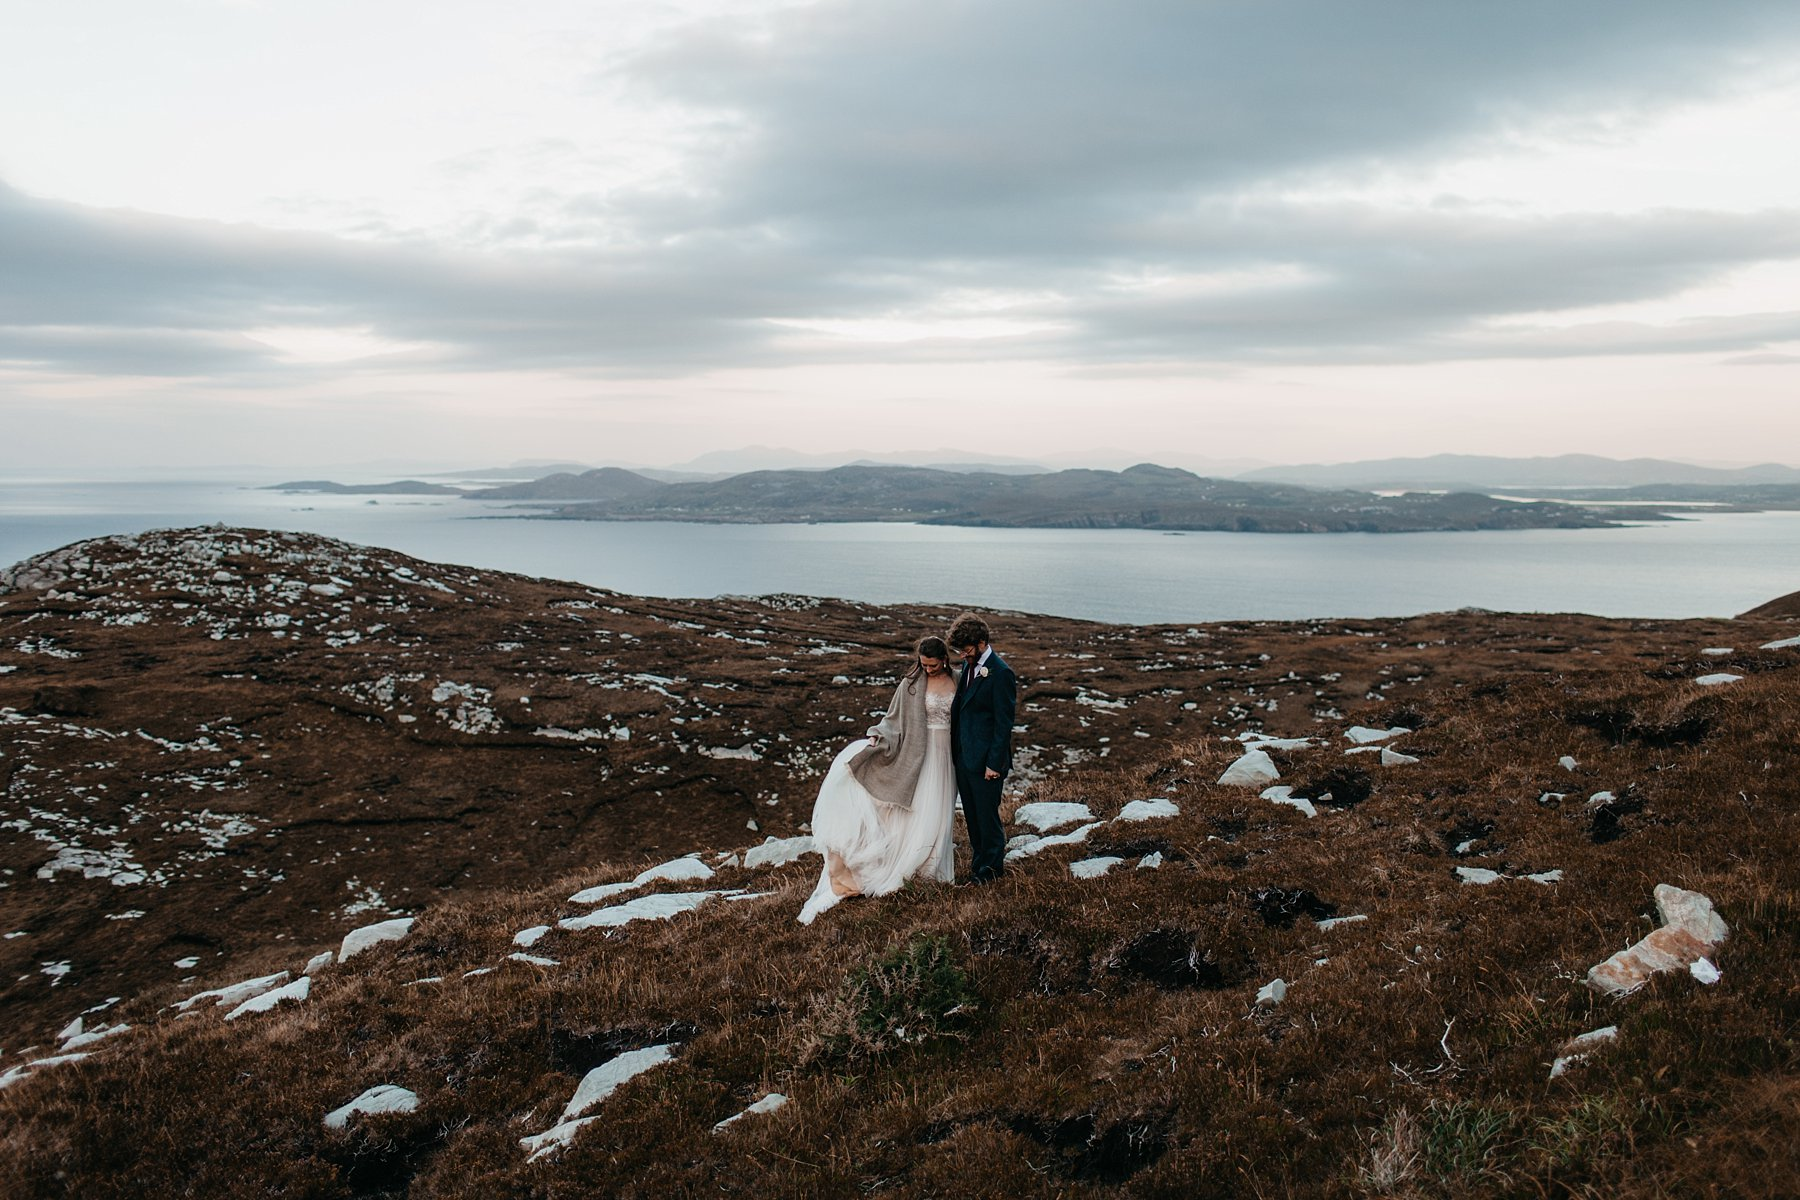 hornhead_donegak_elopement_weddings_0089